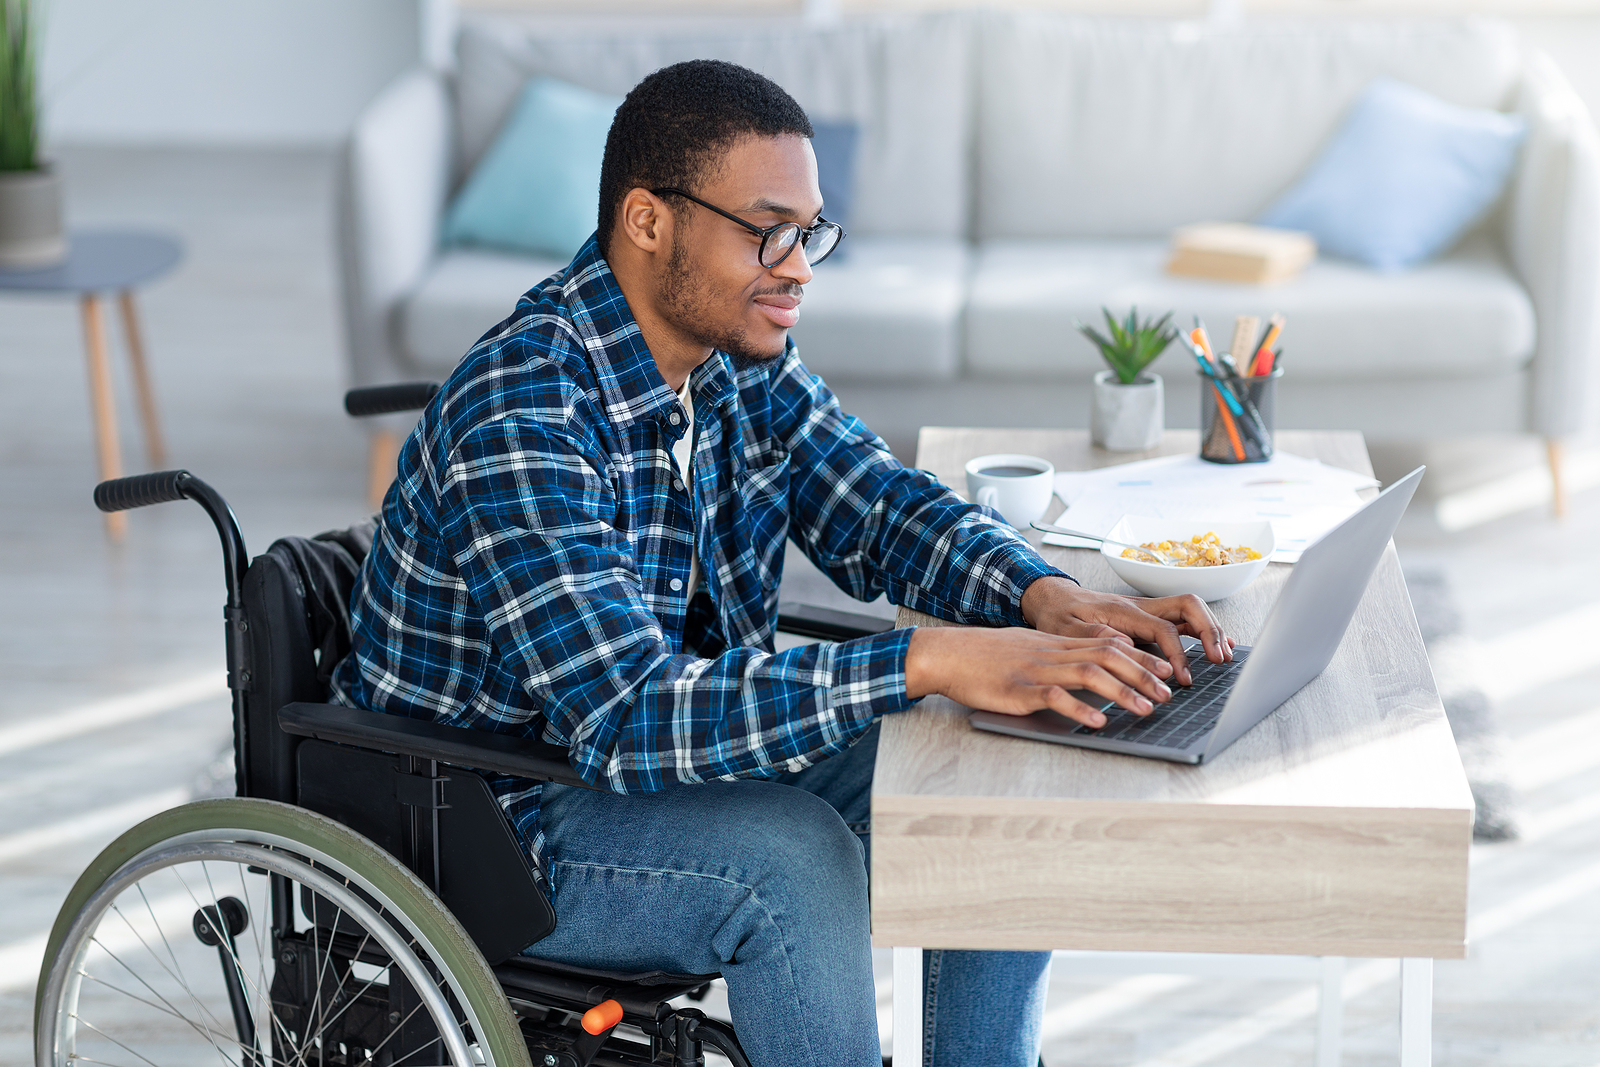 Man in wheel chair on laptop. If you're struggling to overcome the trauma of an injury or are grieving, our EMDR therapists are here to help. Find EMDR therapy near me, and begin to find healing today. Try EMDR therapy in Detroit, MI for support!